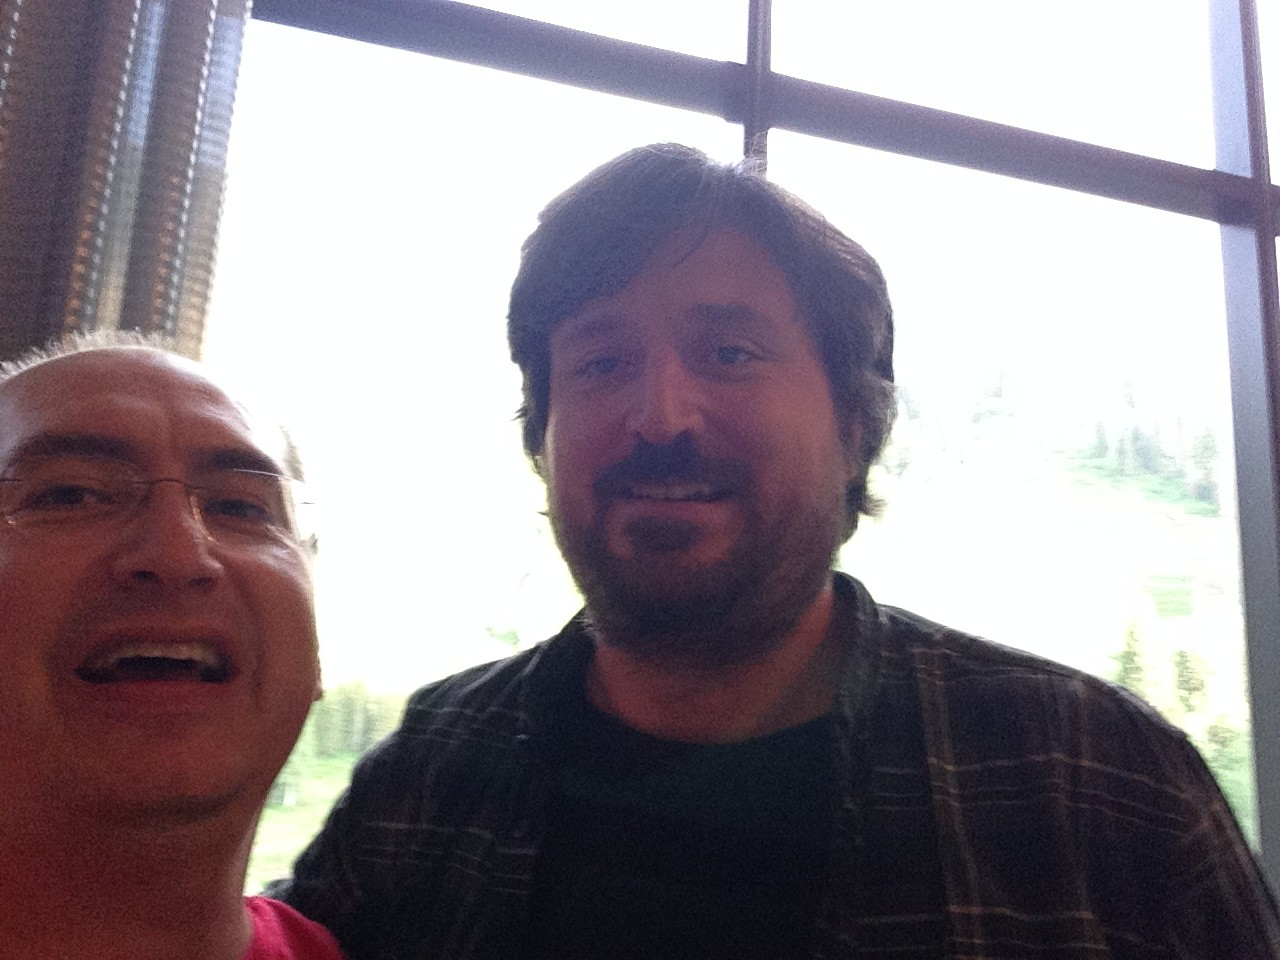 DiGRA 2014 selfie with mystery guest revealed as Jeff Watson